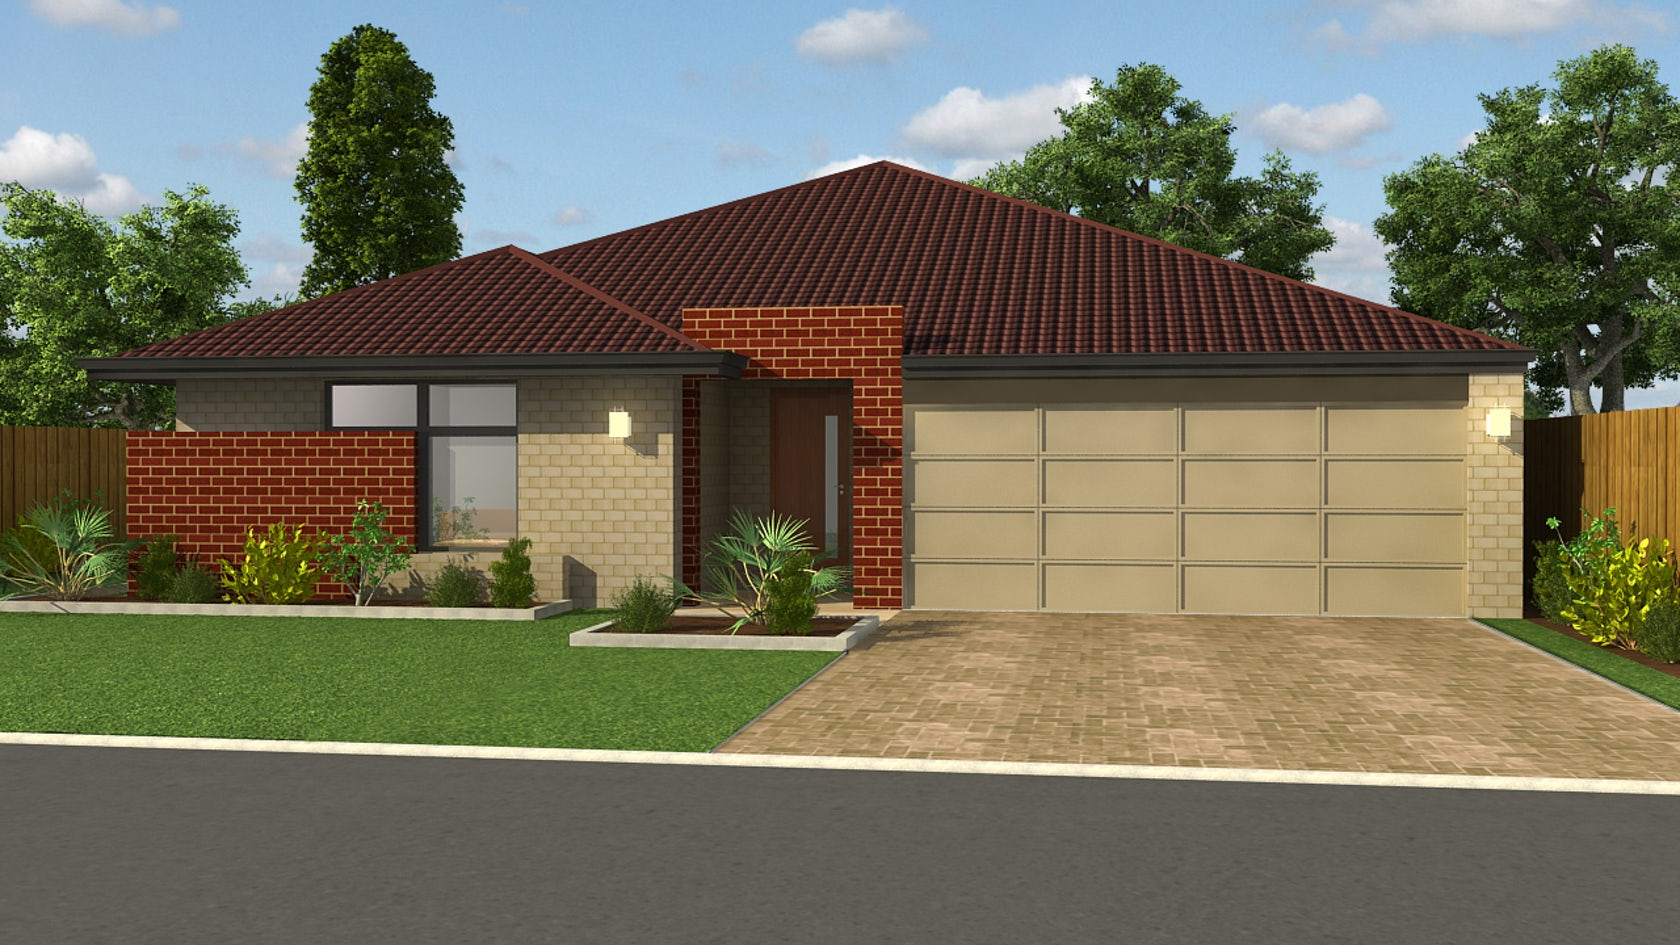 Beautiful exterior detailing of roof home design in 3d - 3d home exterior design tool download ...